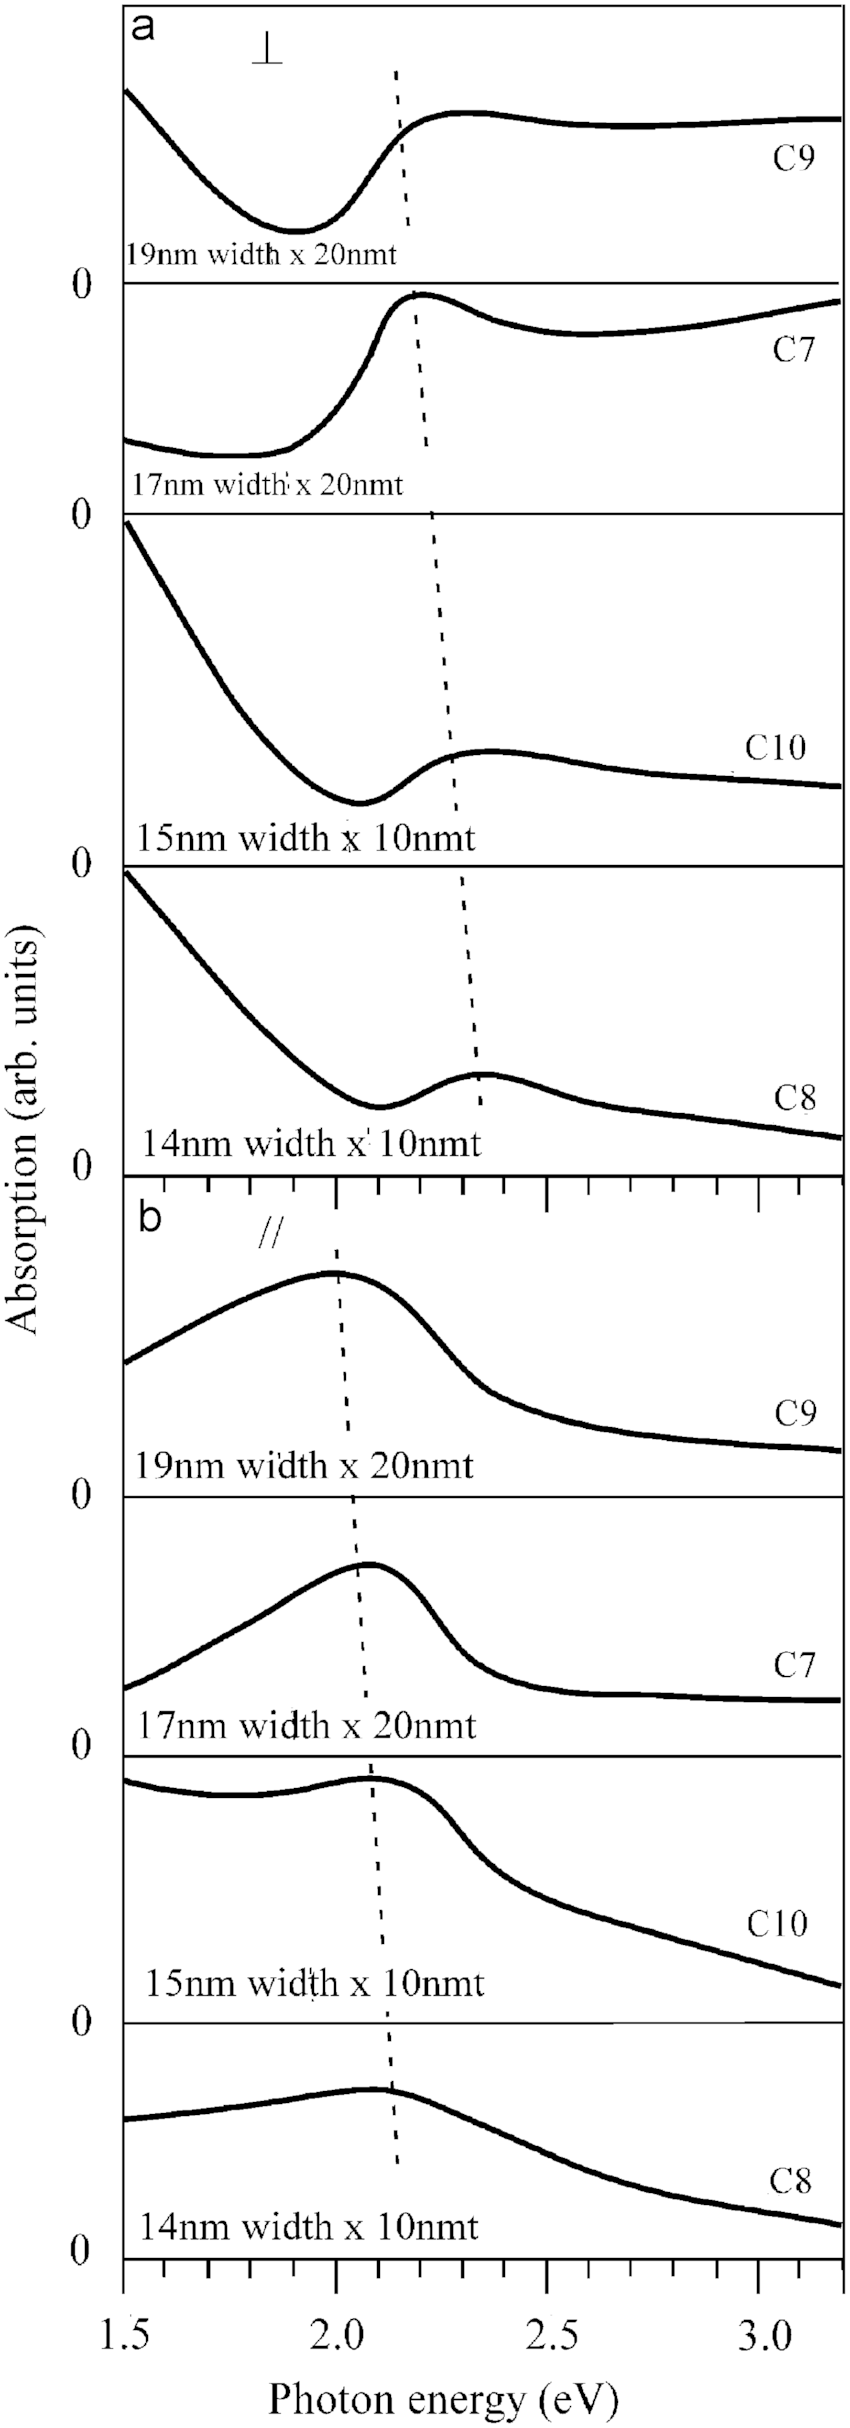 shows the measured absorption spectra of Cu nanowire